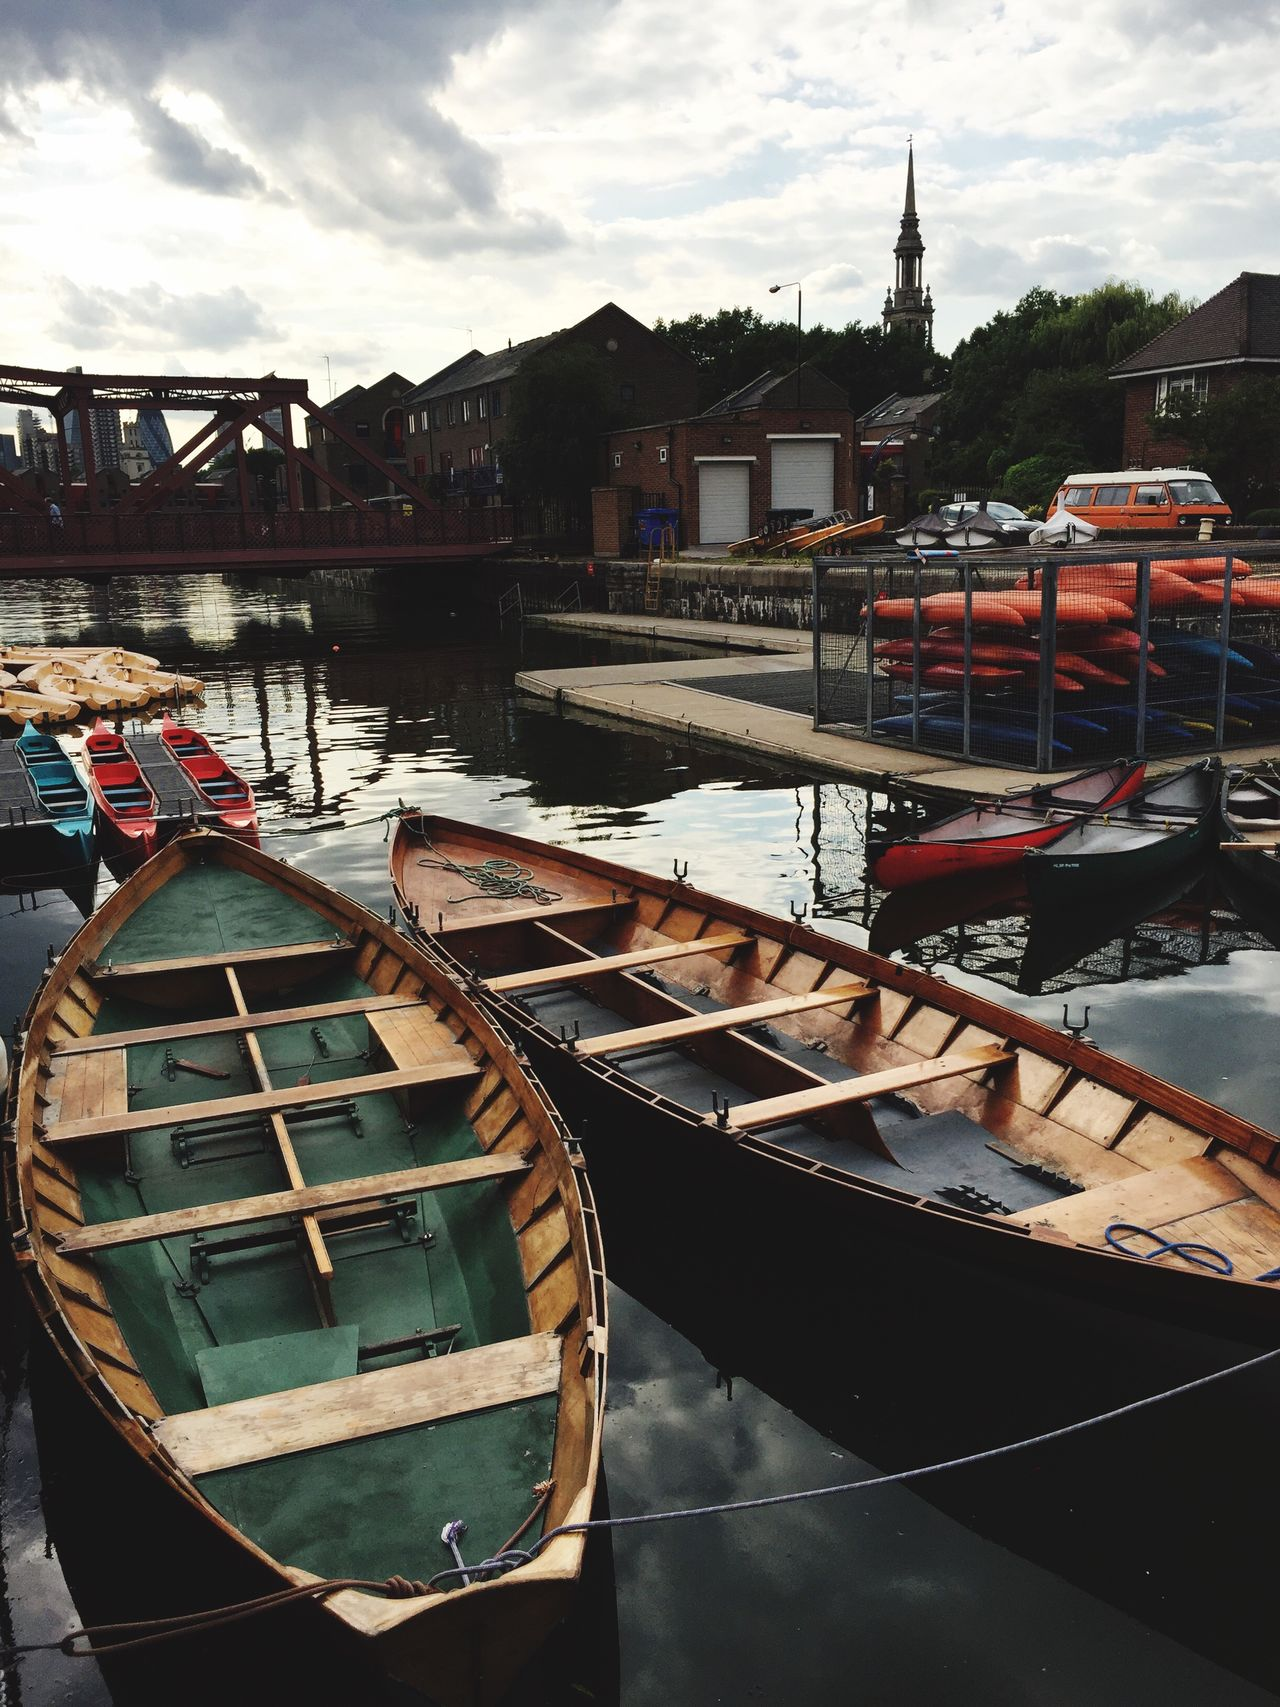 EyeEm LOST IN London Nautical Vessel Water Moored Built Structure Architecture Boat Building Exterior Transportation Mode Of Transport Sky Cloud - Sky Canal Day Outdoors Harbor Real People Sea Nature Gondola - Traditional Boat